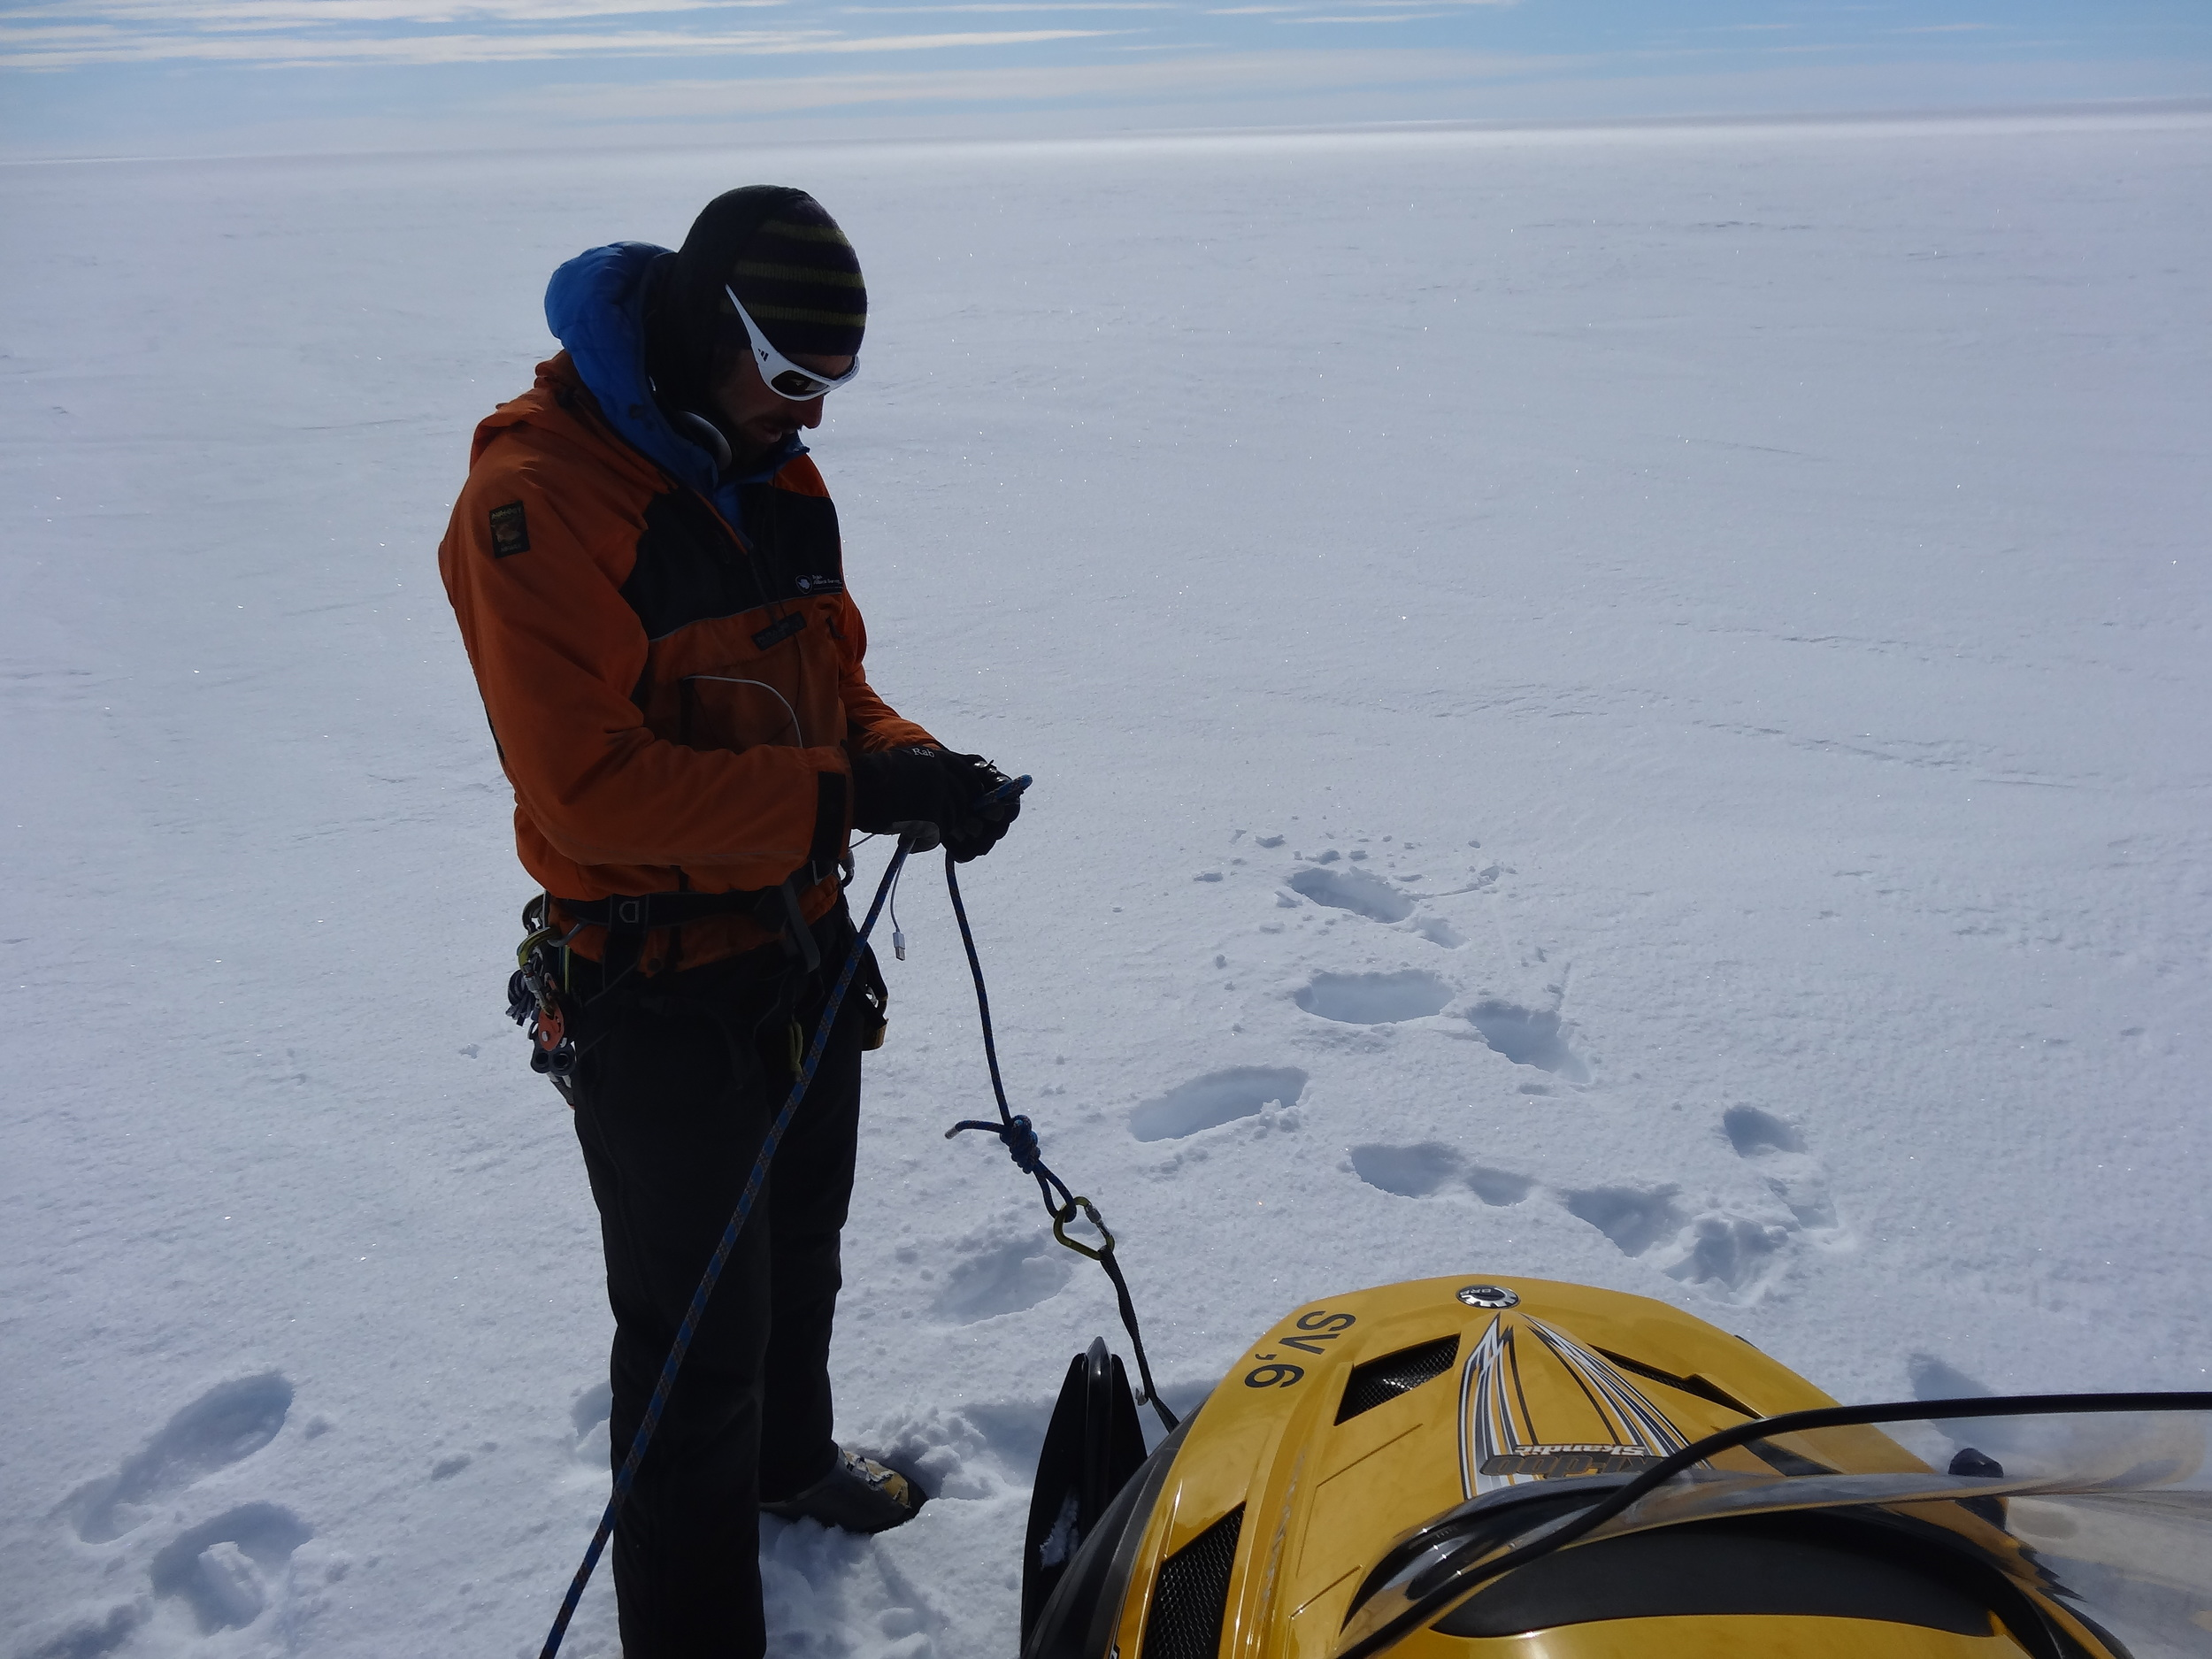 Fixing a rope to investigate some crevasses before driving across with skidoos